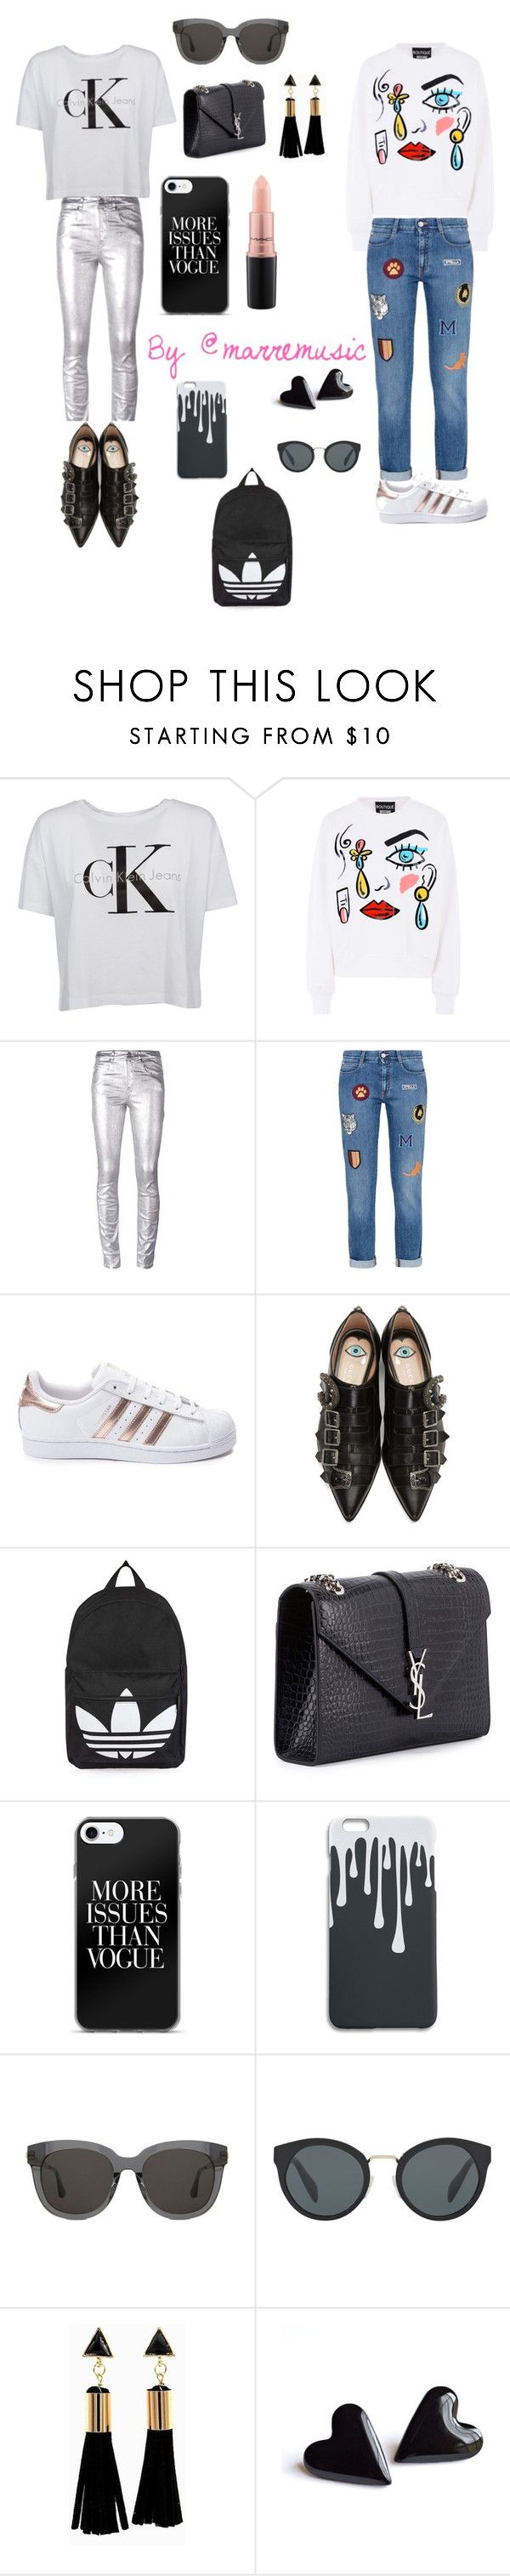 """Street style"" by marremusic on Polyvore featuring moda, Calvin Klein, Boutique Moschino, Étoile Isabel Marant, STELLA McCARTNEY, adidas, Gucci, Topshop, Yves Saint Laurent y Gentle Monster"